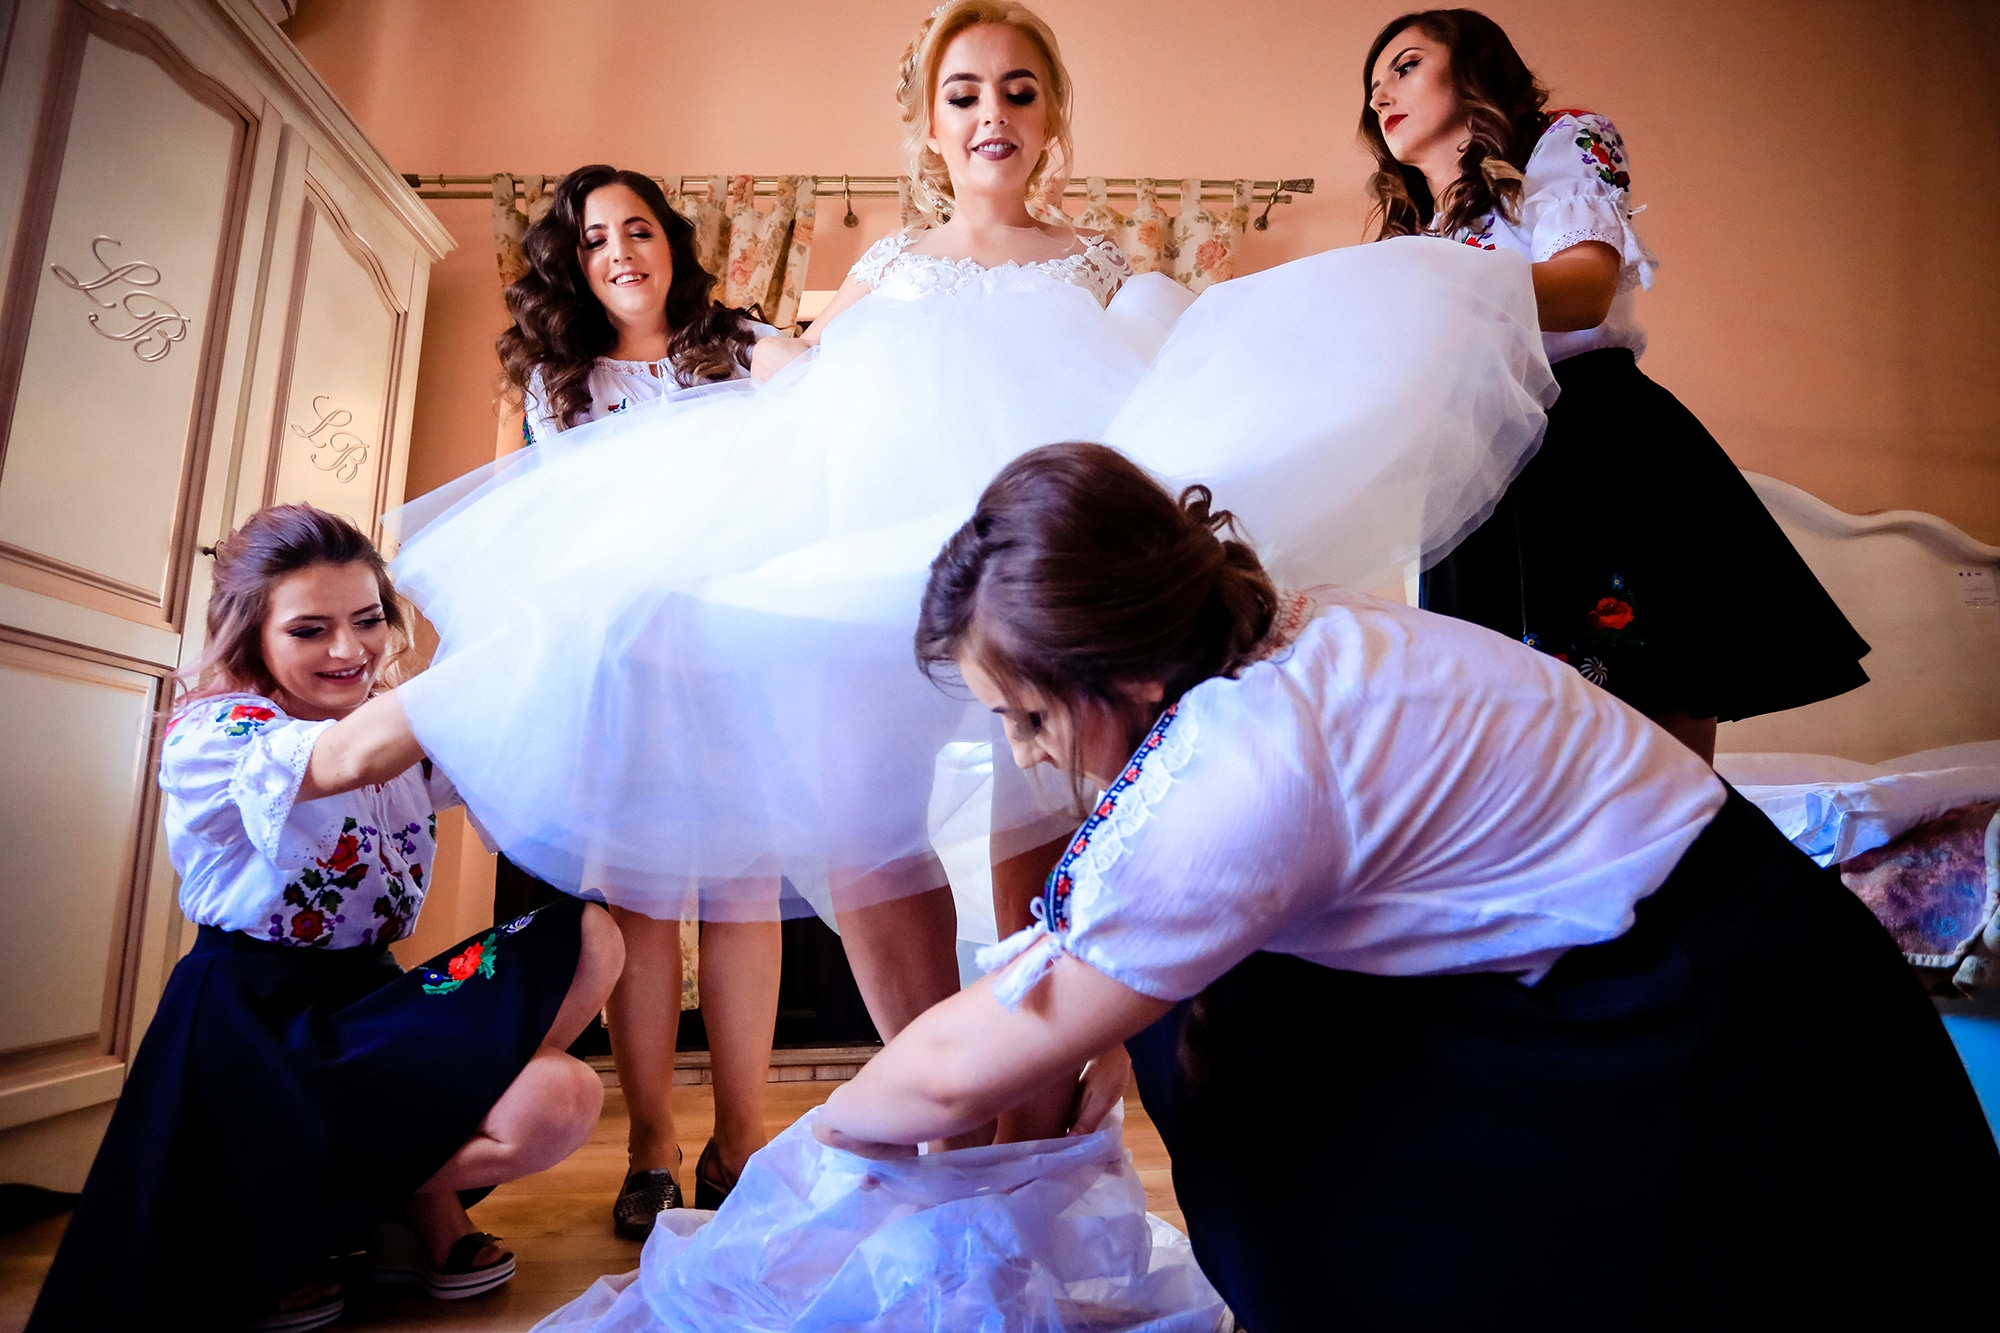 fotograf_nunta_suceava_romania_wedding_photographer_europe-(12)